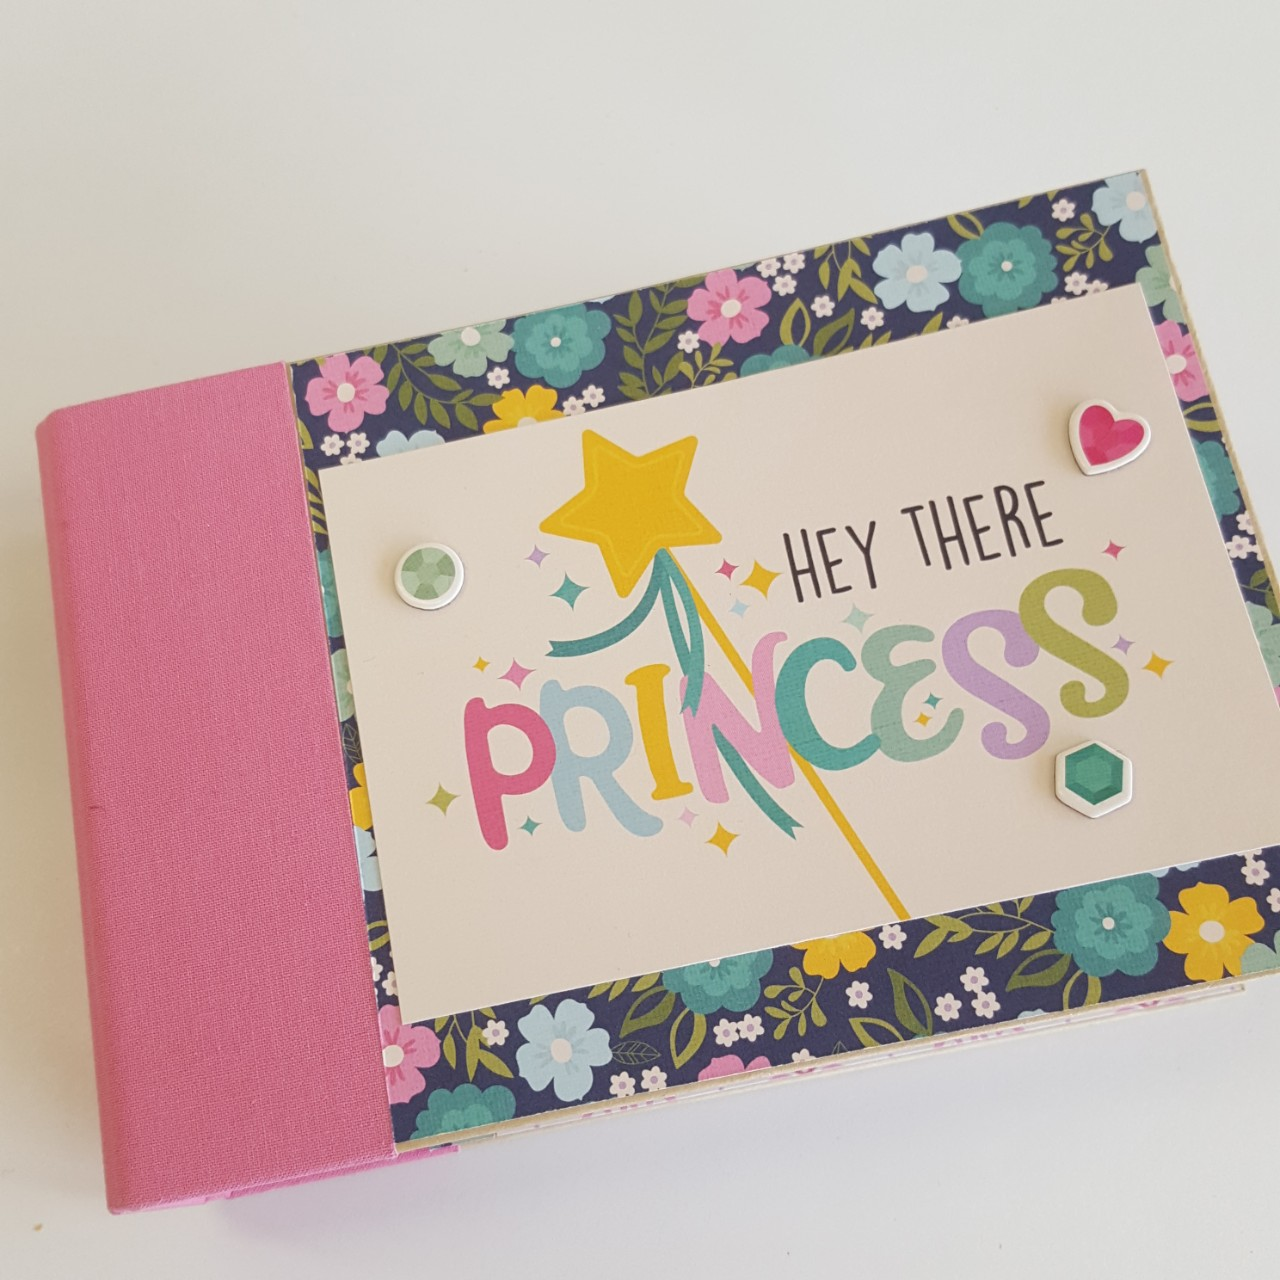 Simple Stories Little Princess binder kit